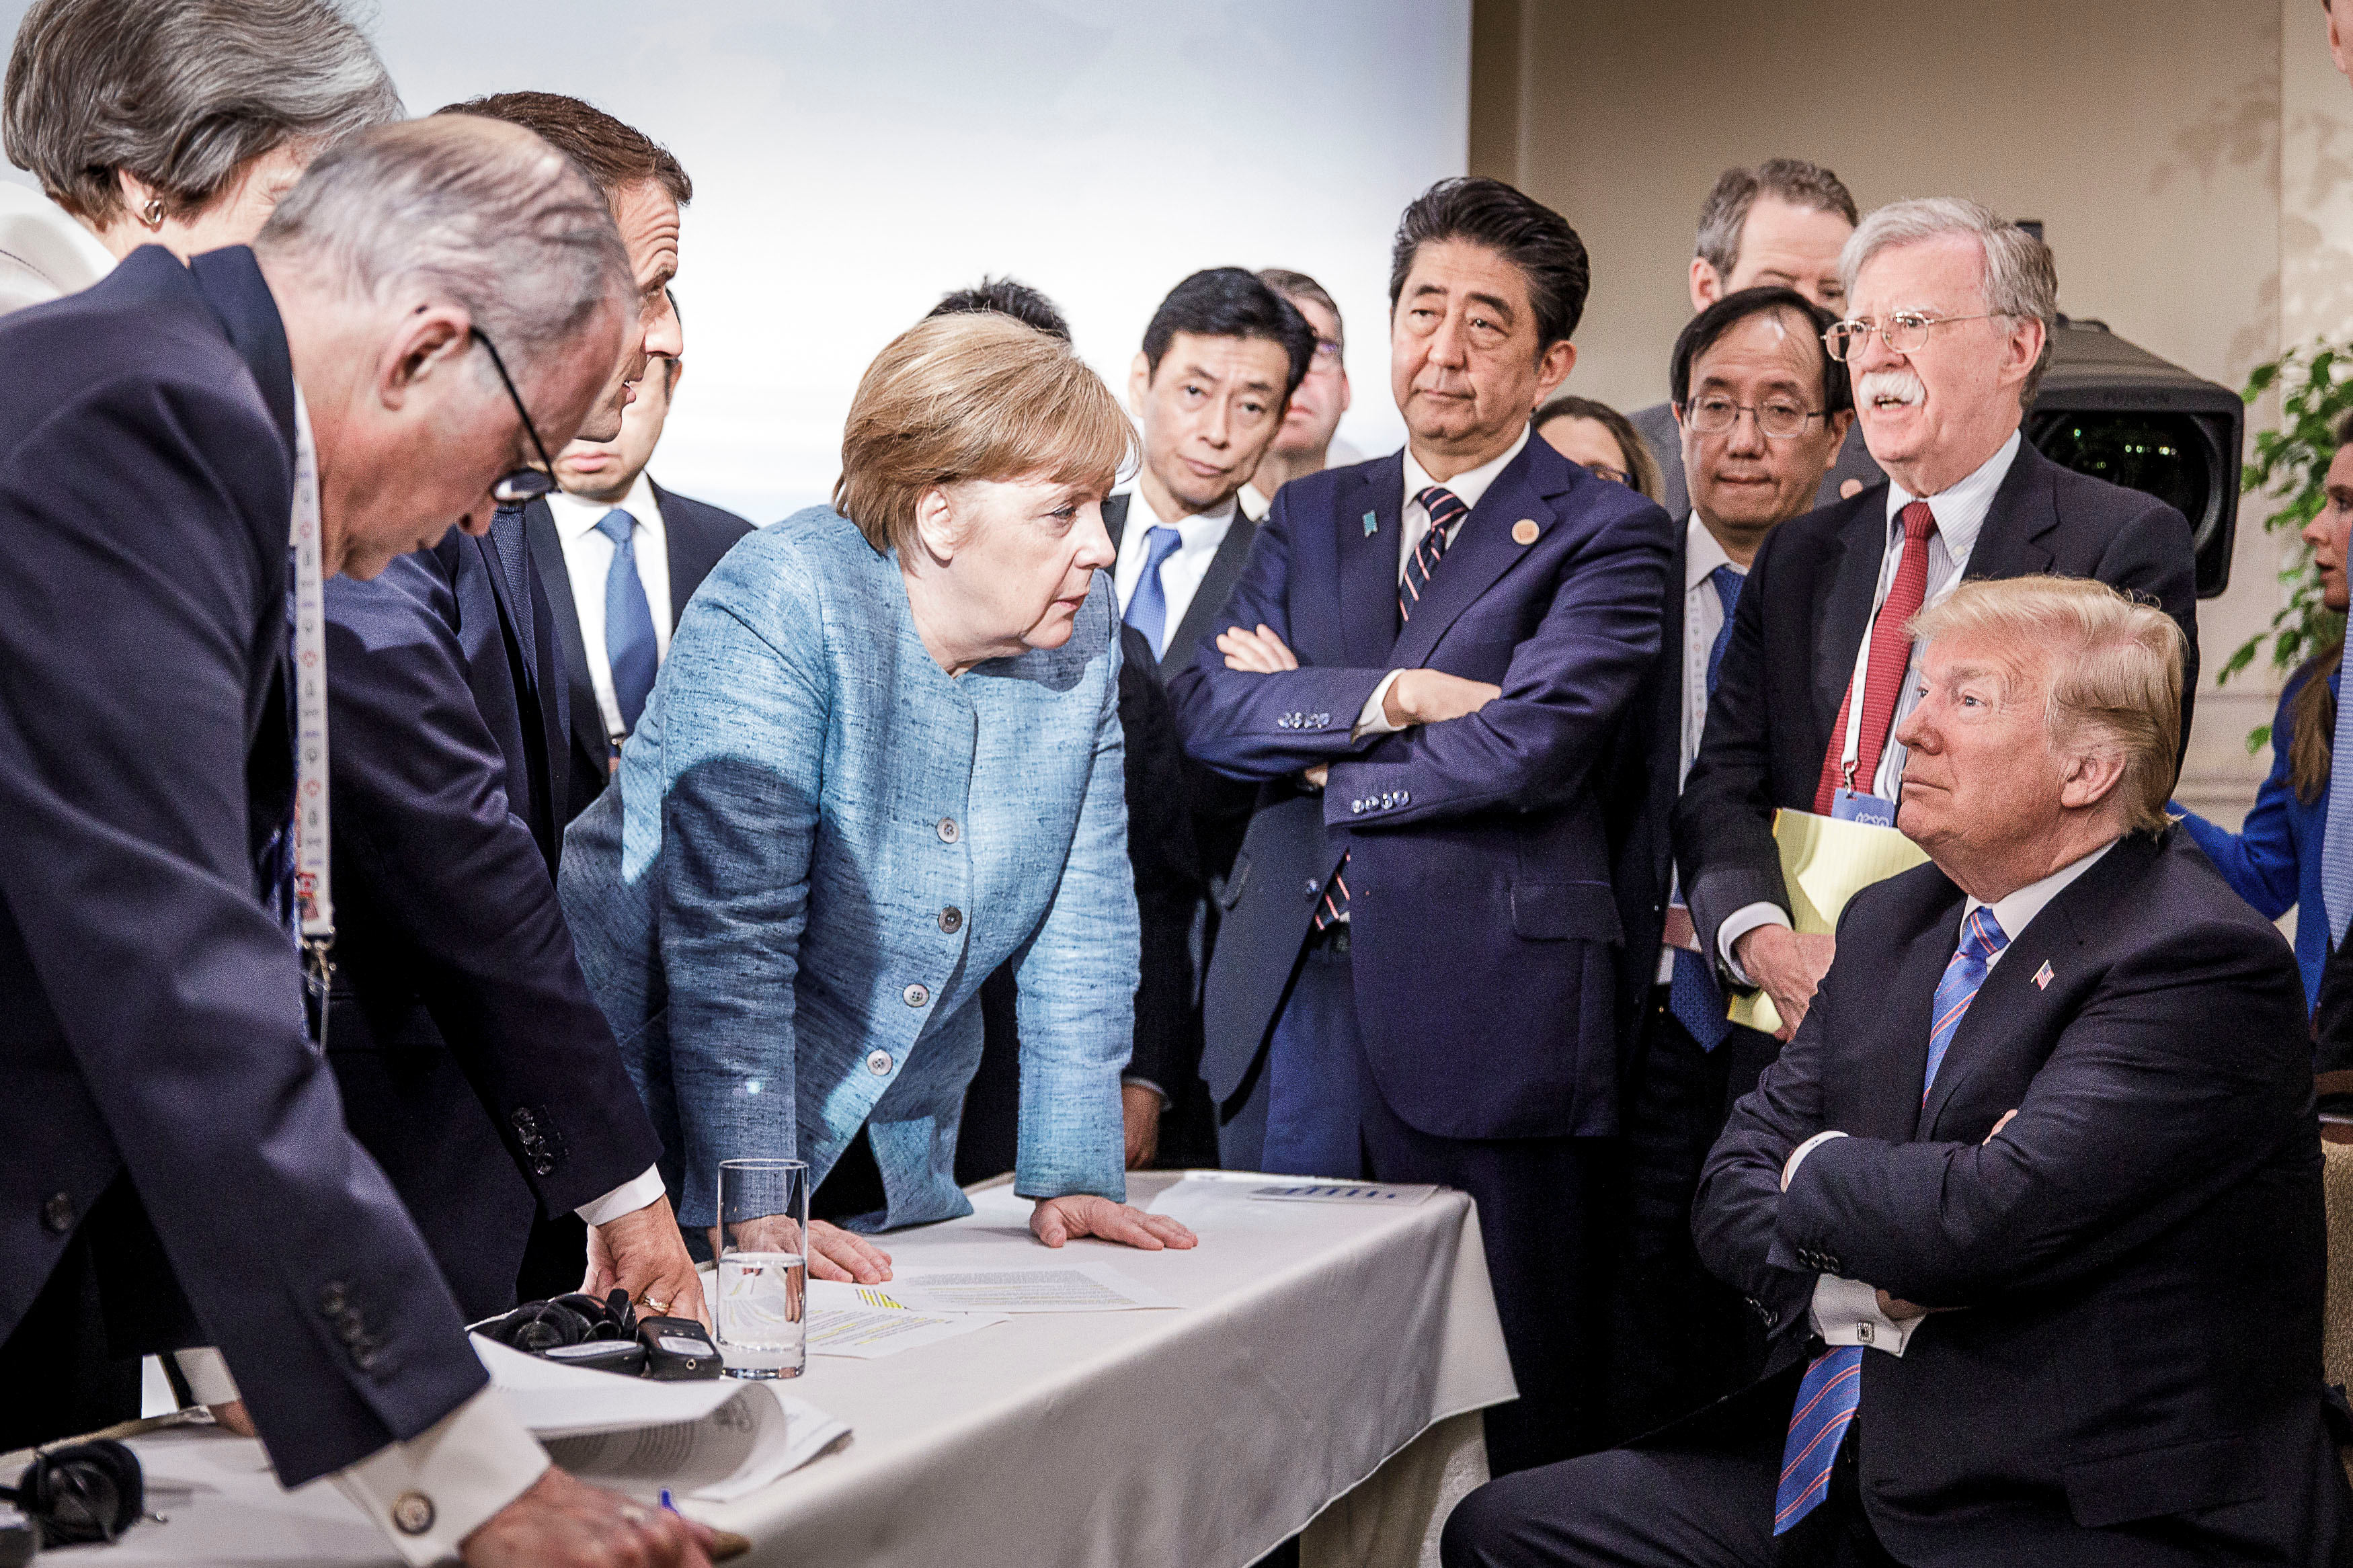 A photo from the G7 perfectly captured Trump vs. the rest of the world